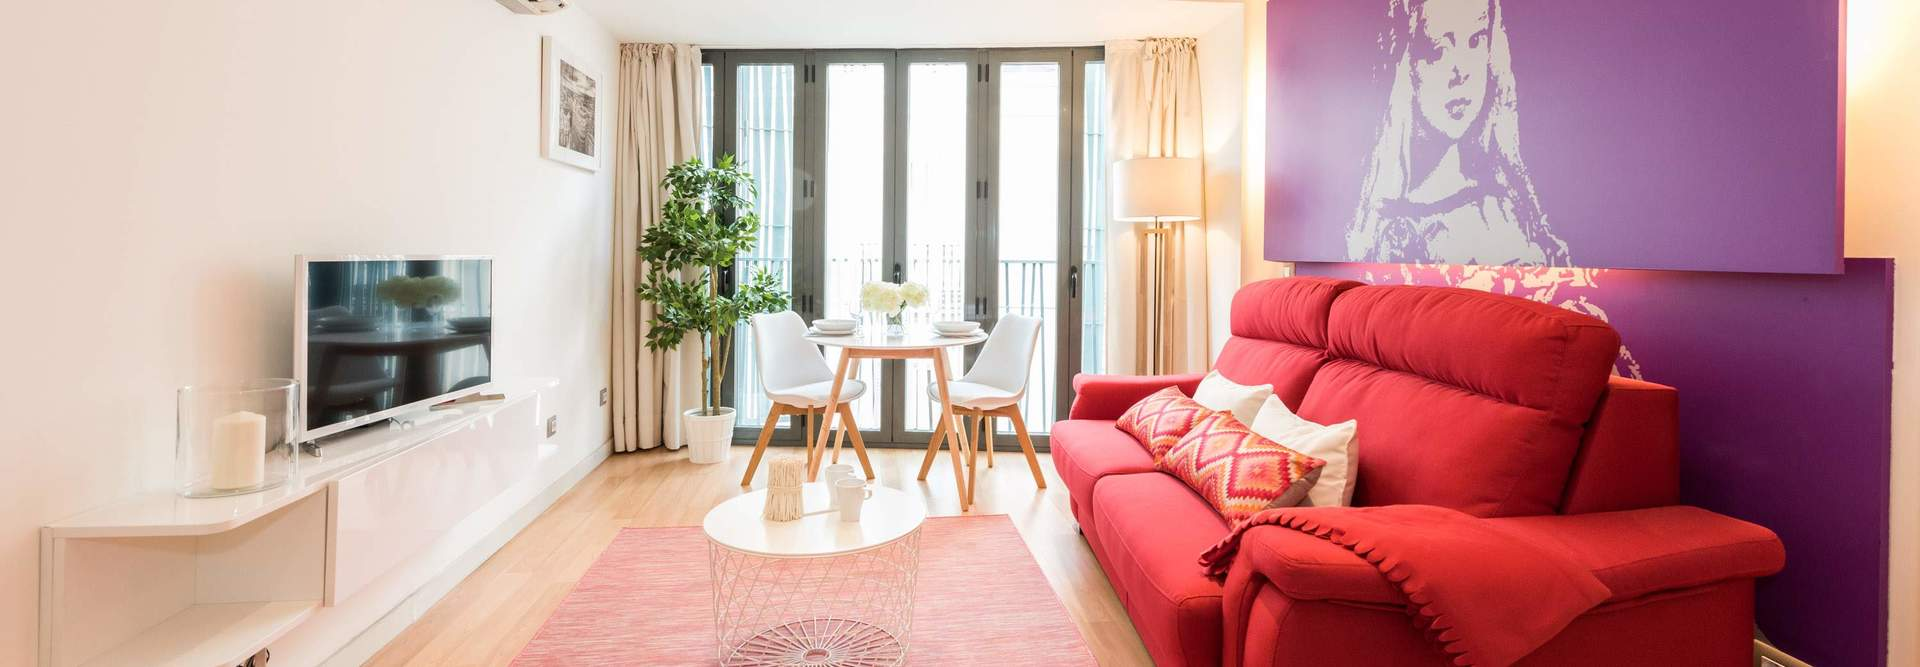 Home alquiler apartamento madrid centro mad4rent  14